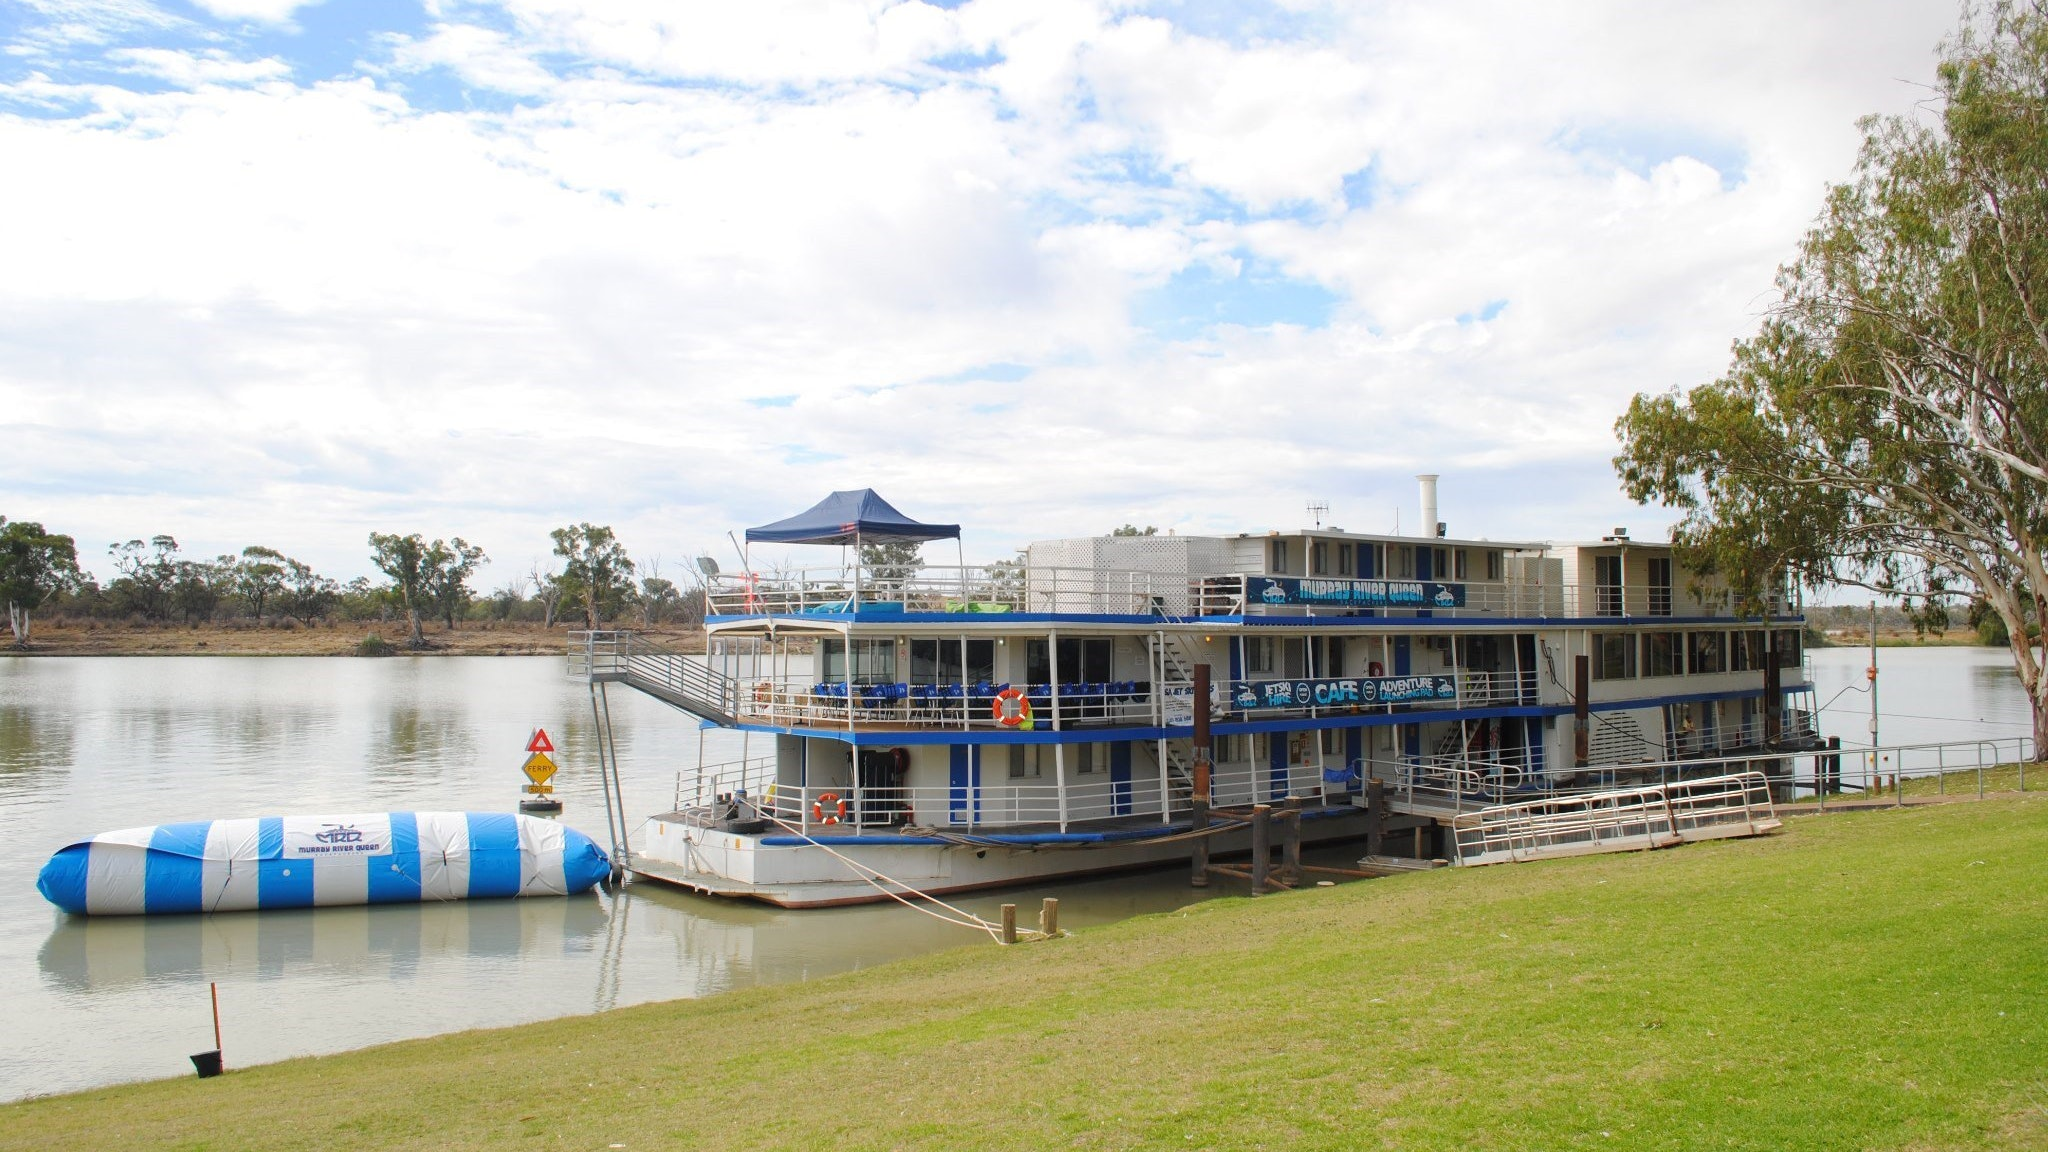 Murray River Queen Backpackers - South Australia Travel